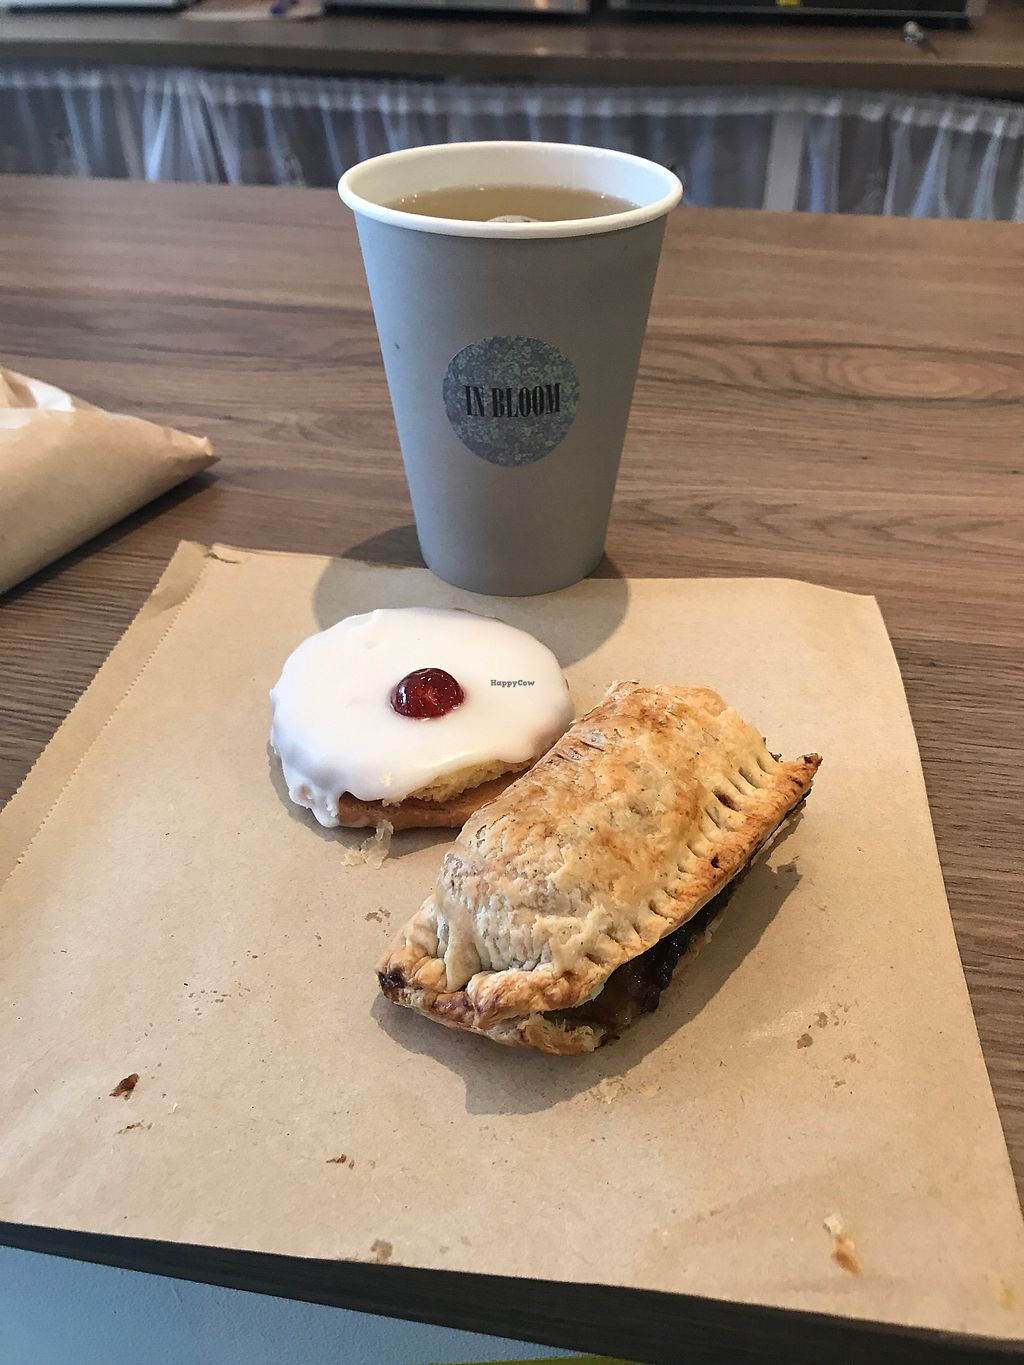 """Photo of In Bloom  by <a href=""""/members/profile/ClaireAlexander"""">ClaireAlexander</a> <br/>Amazing latte, empire biscuit and sausage roll.  <br/> December 1, 2017  - <a href='/contact/abuse/image/96713/331108'>Report</a>"""